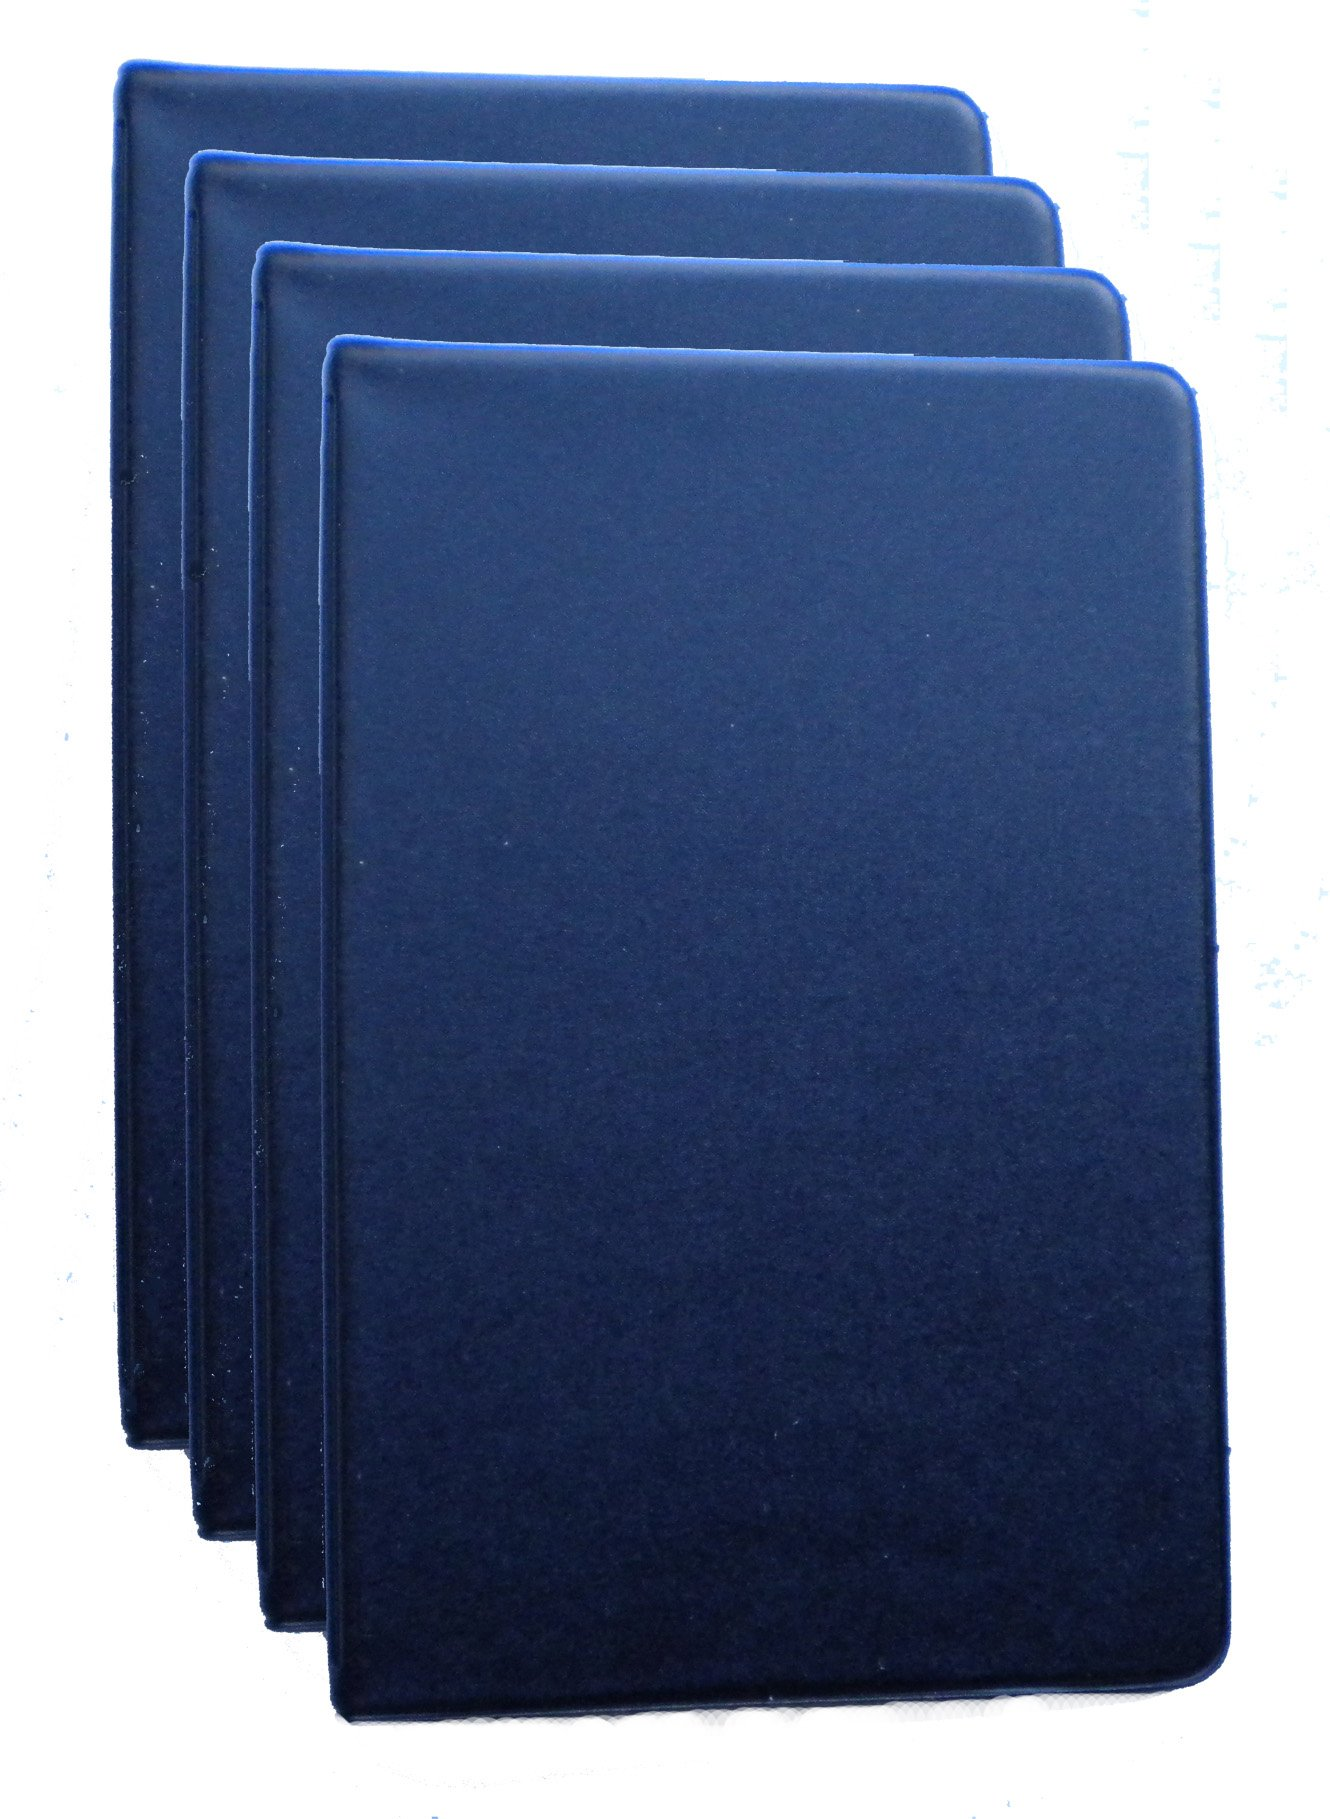 Mead 46034-BK Mini 6-Ring Black Memo Books with 3.75 x 6.75-inch Lined Paper, 4-PACK